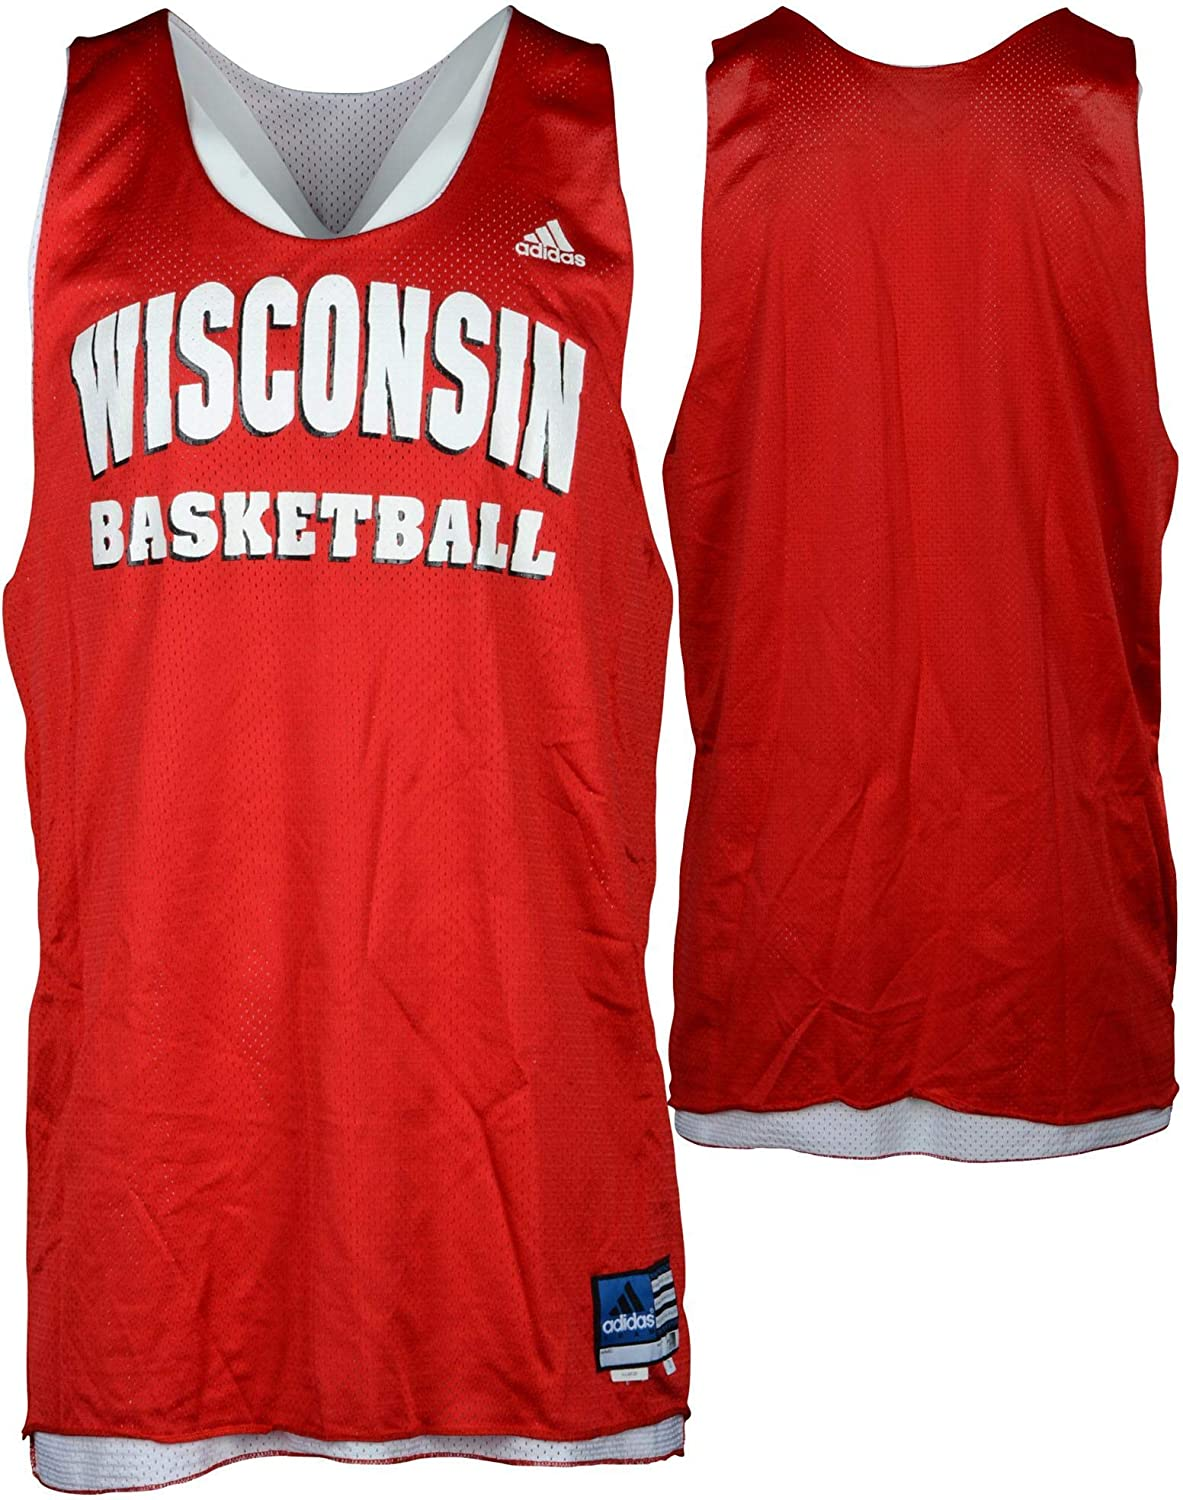 Wisconsin Badgers Team-Issued Red Practice Jersey from the Men's Basketball Program - Size XL - Fanatics Authentic Certified